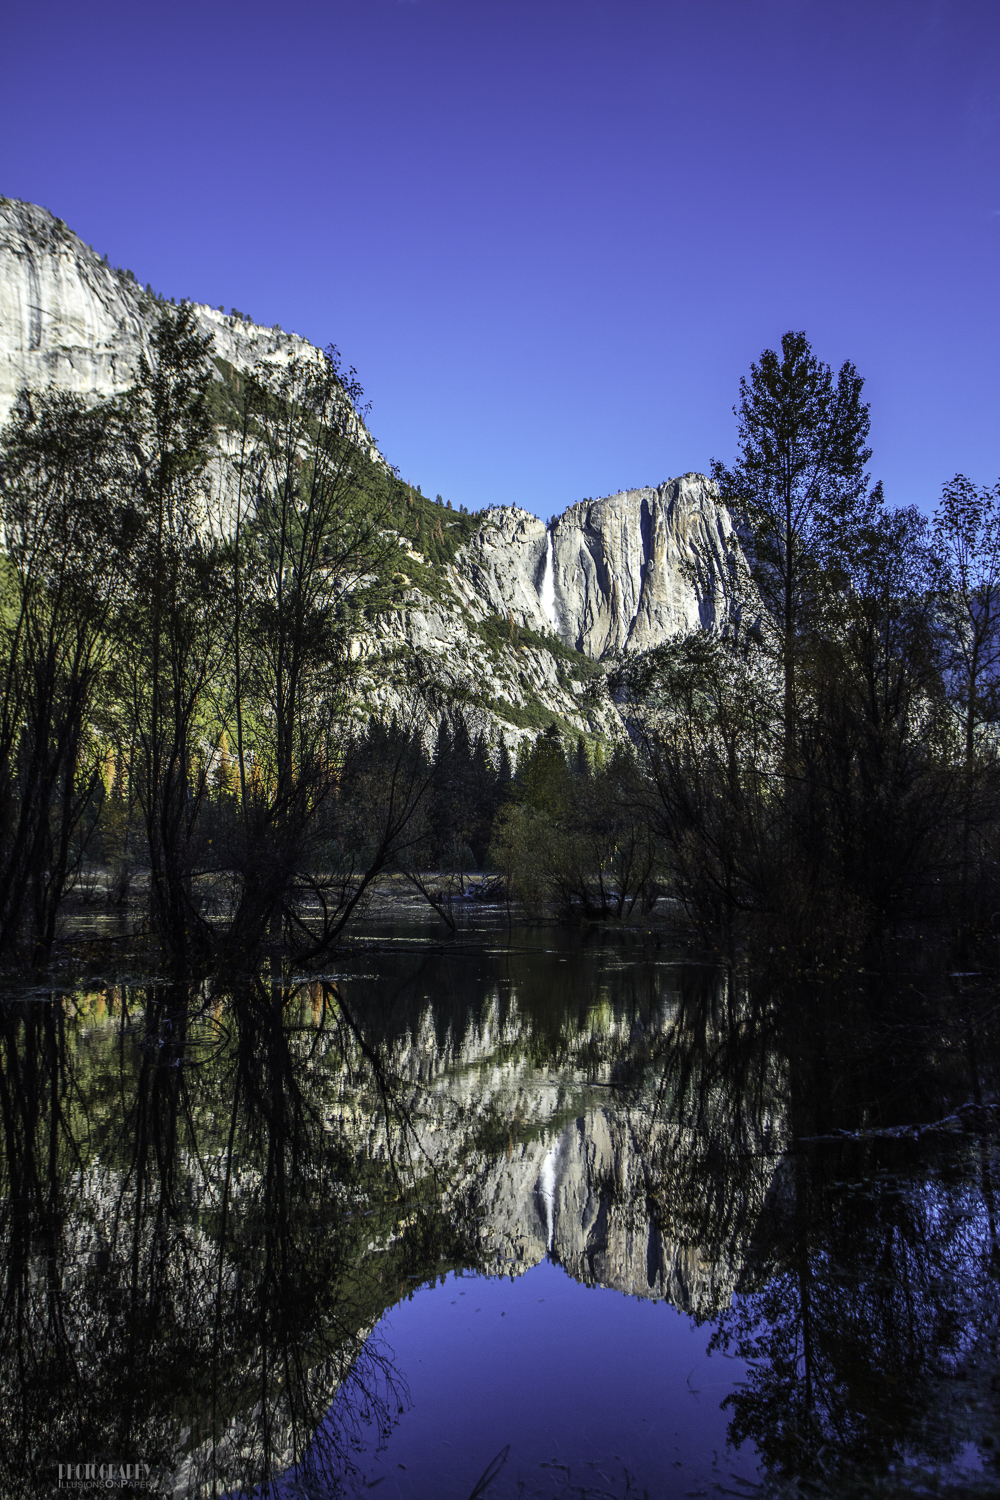 This was one area where we could see that the Merced River had flowed beyond its normal banks.  Normally, we would not see trees out in the river as these were!  That is Yosemite Falls reflected in the river (peaceful along this stretch).